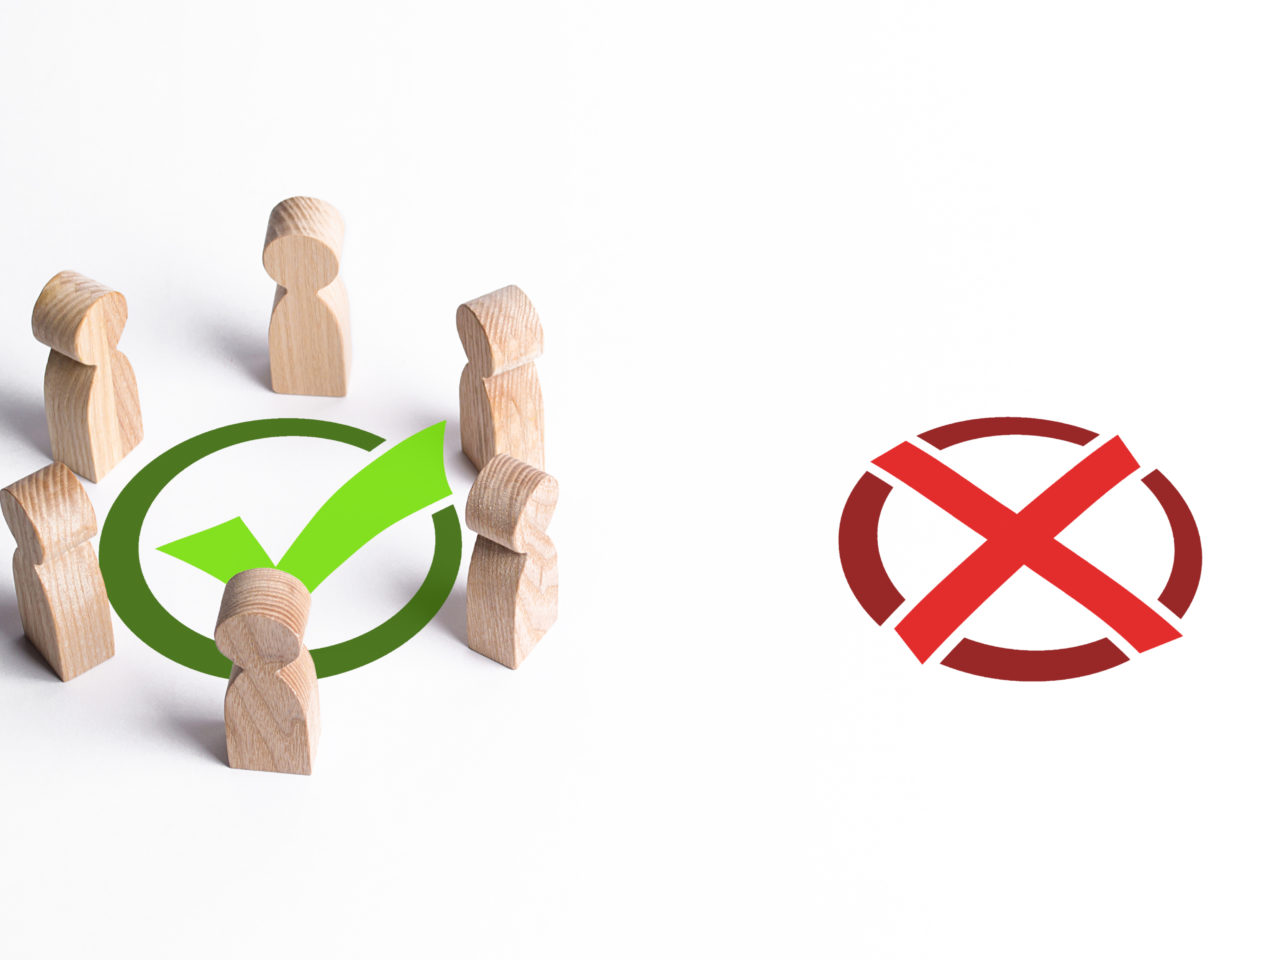 A group of people surrounded a green checkmark, ignoring the red X. The right collective choice, smart strategy and foresight. Professionalism, cooperation and collaboration. Public approval.